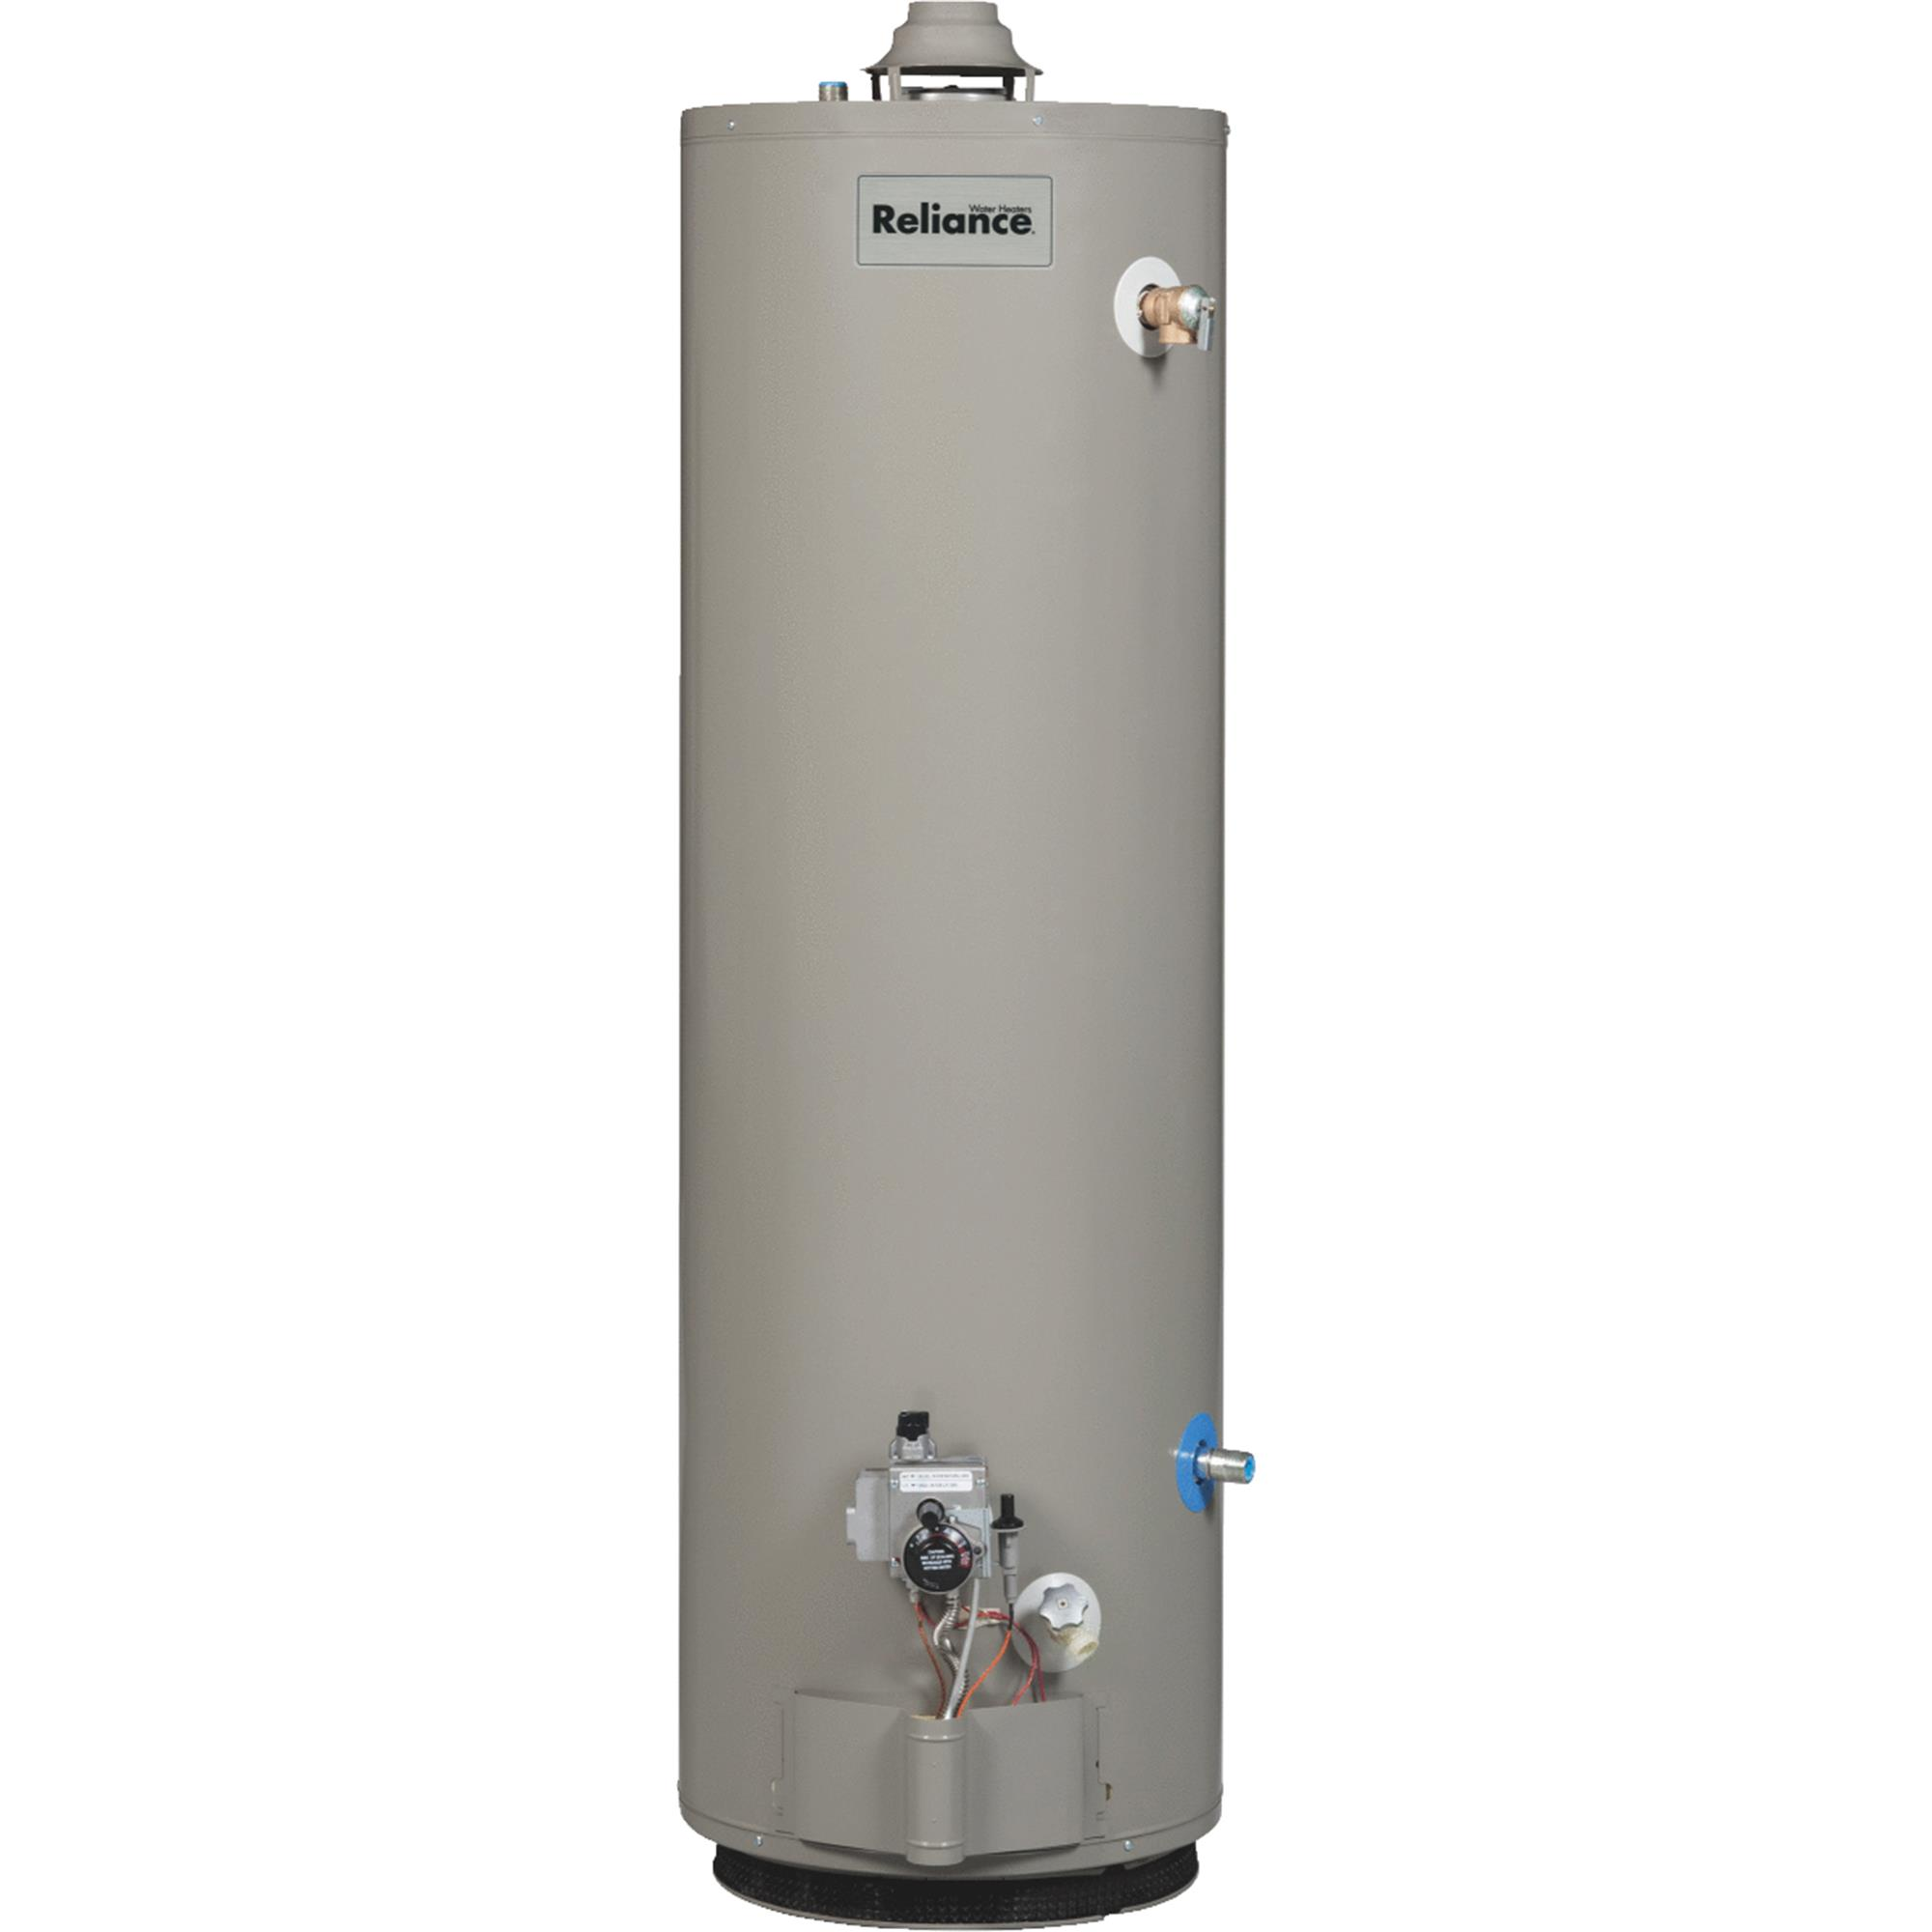 Reliance Mobile Home 40gal Natural Gas/Liquid Propane Water Heater